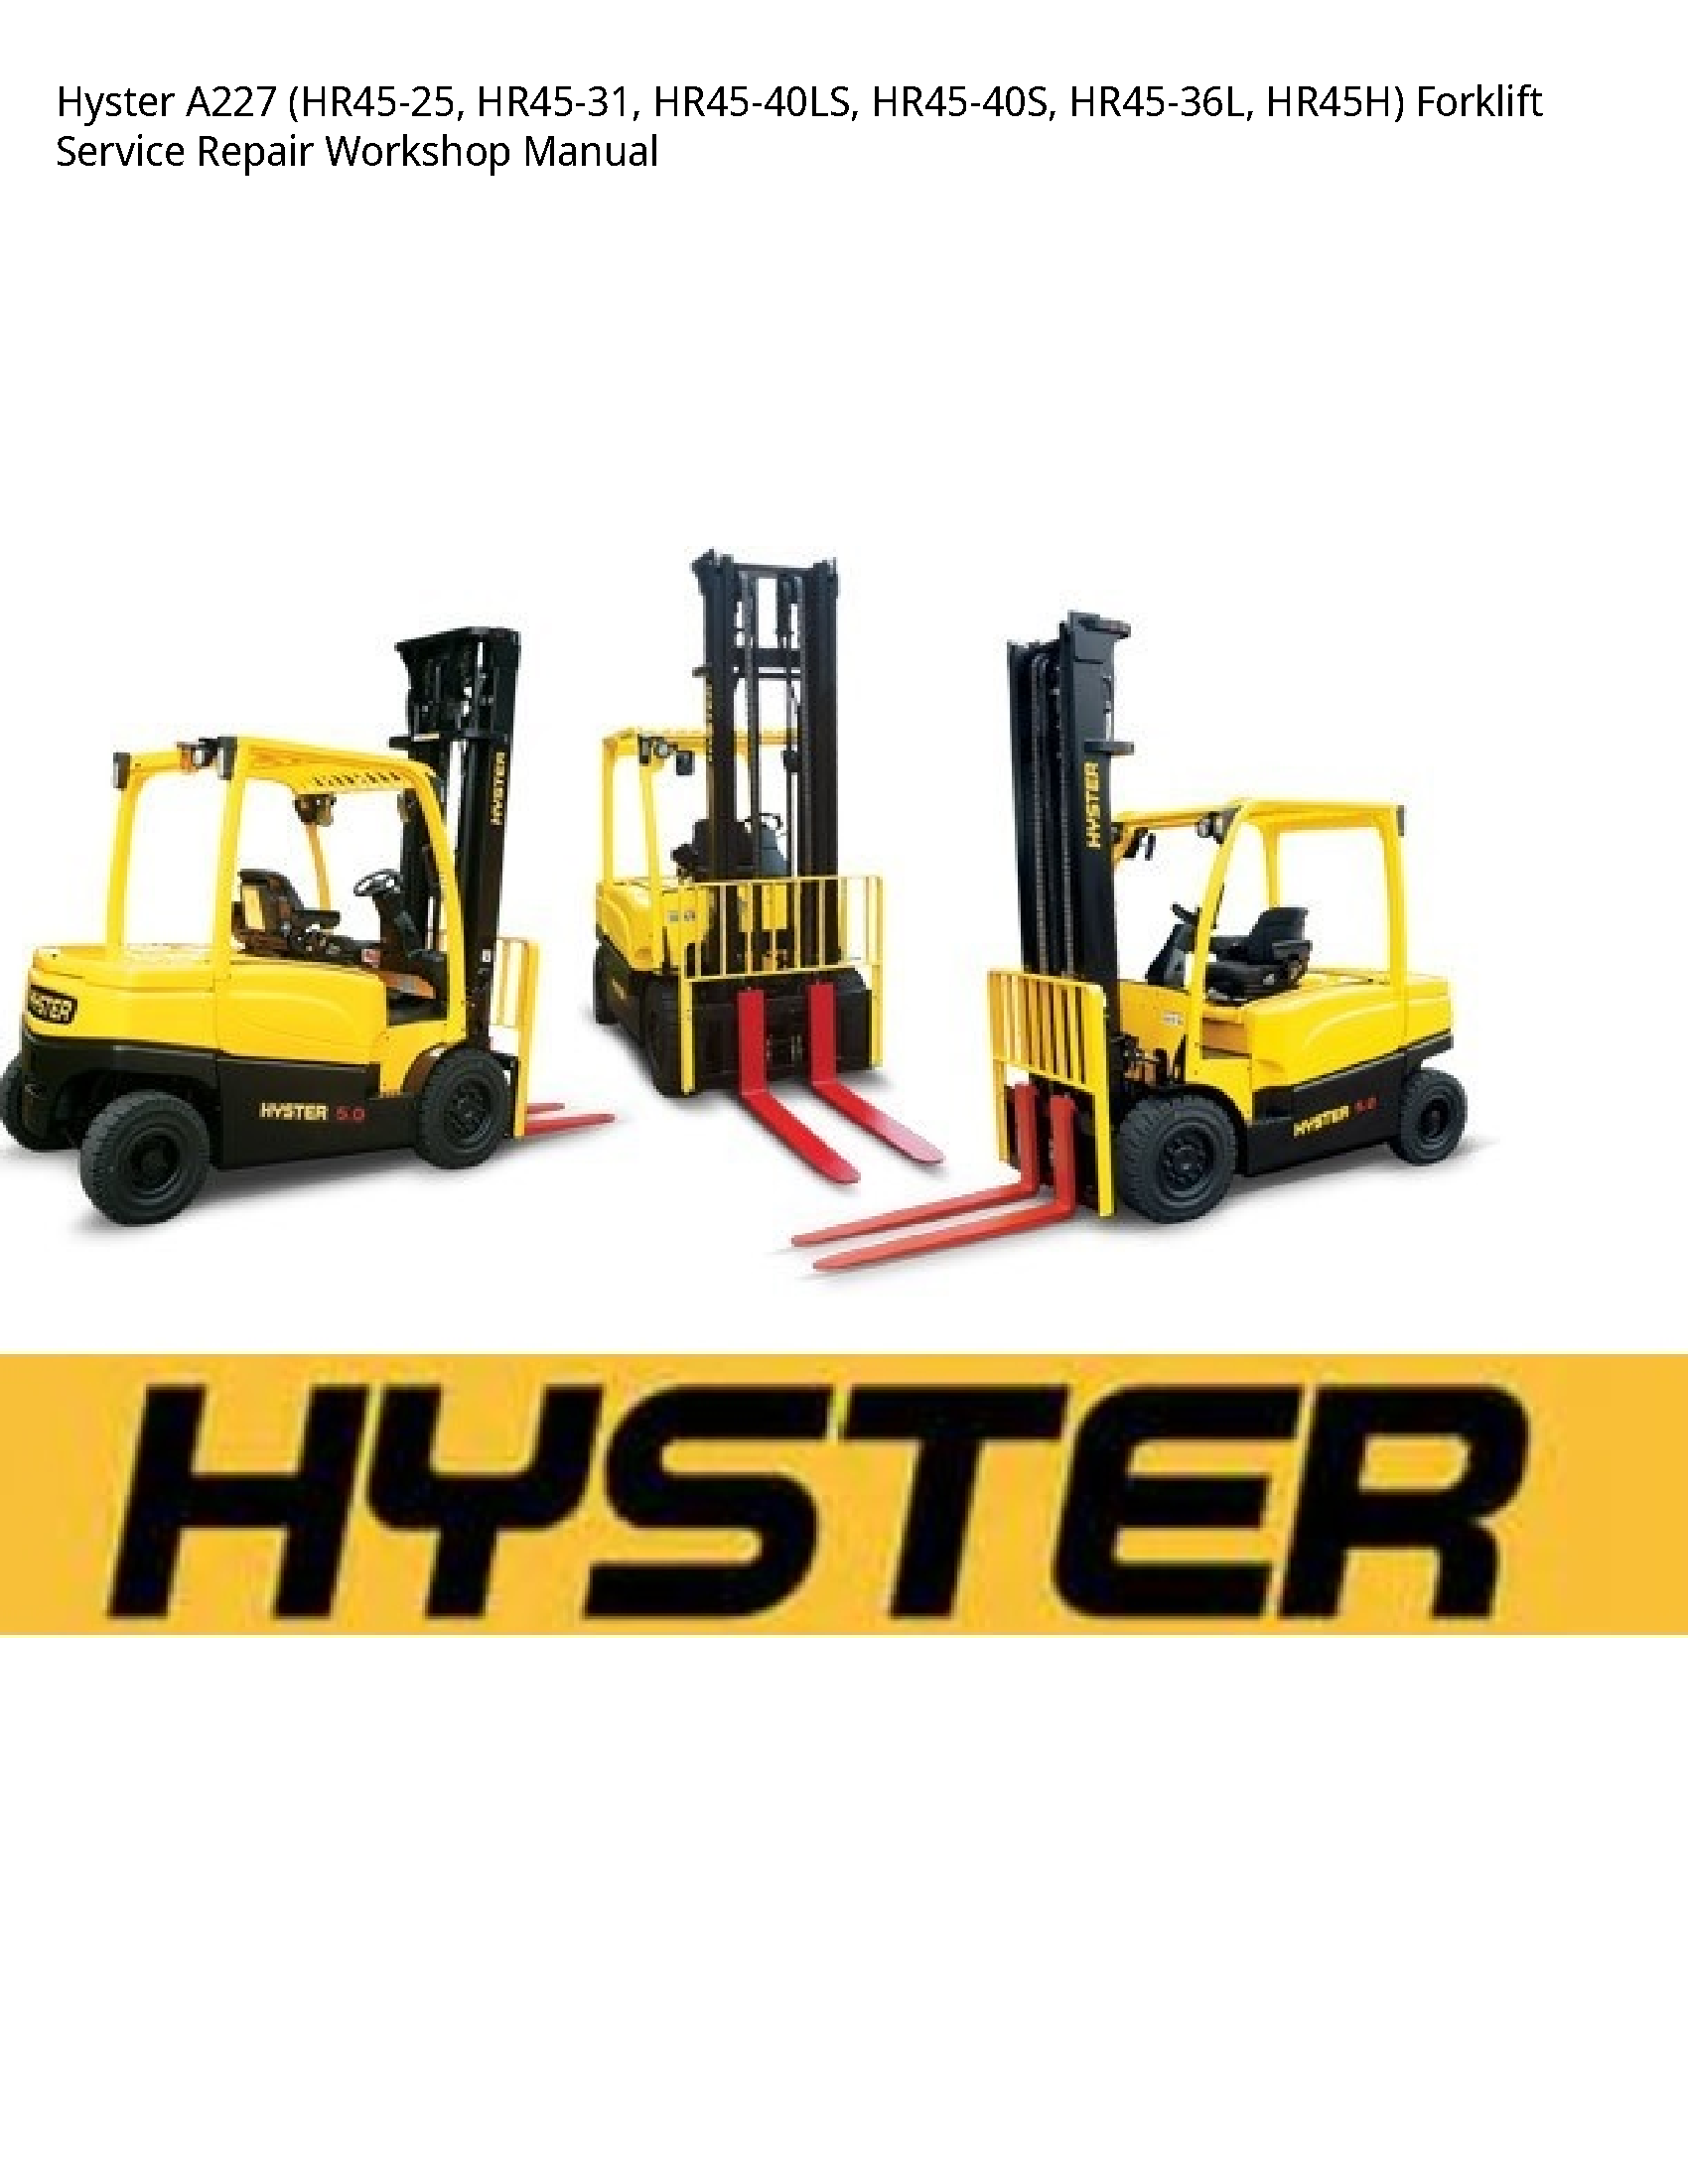 Hyster A227 Forklift manual